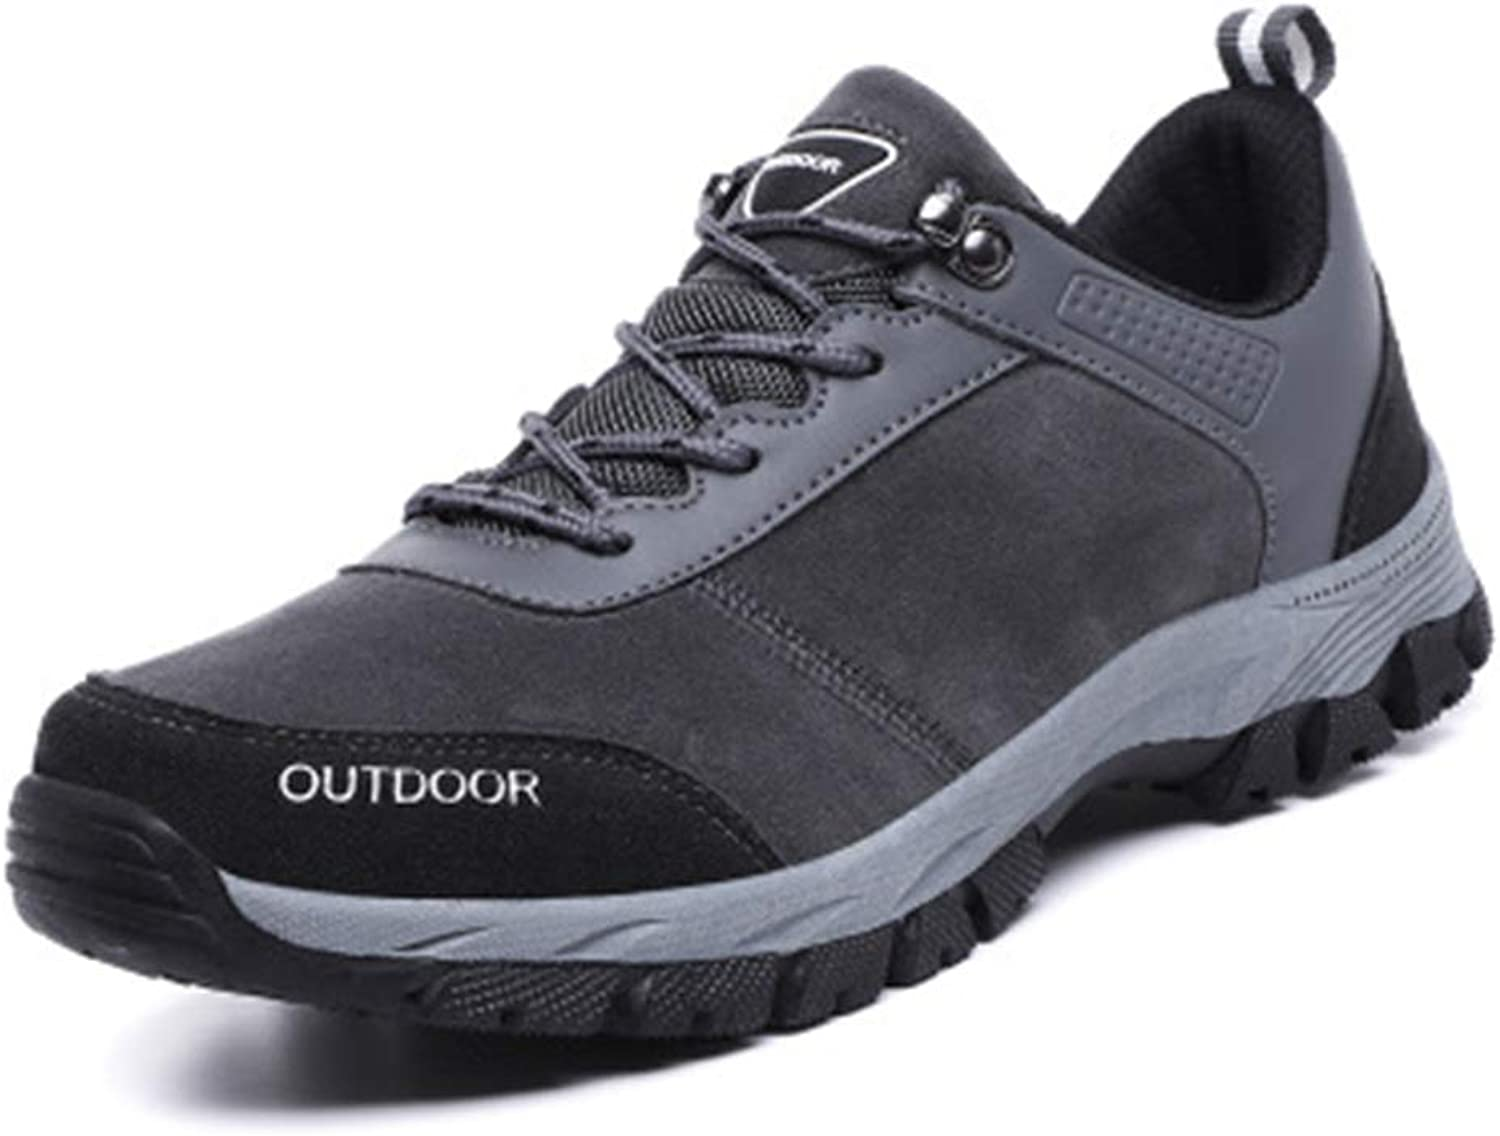 Walking shoes Waterproof Outdoor Hiking Trekking Climbing shoes Lightweight Breathable Trainers WQING